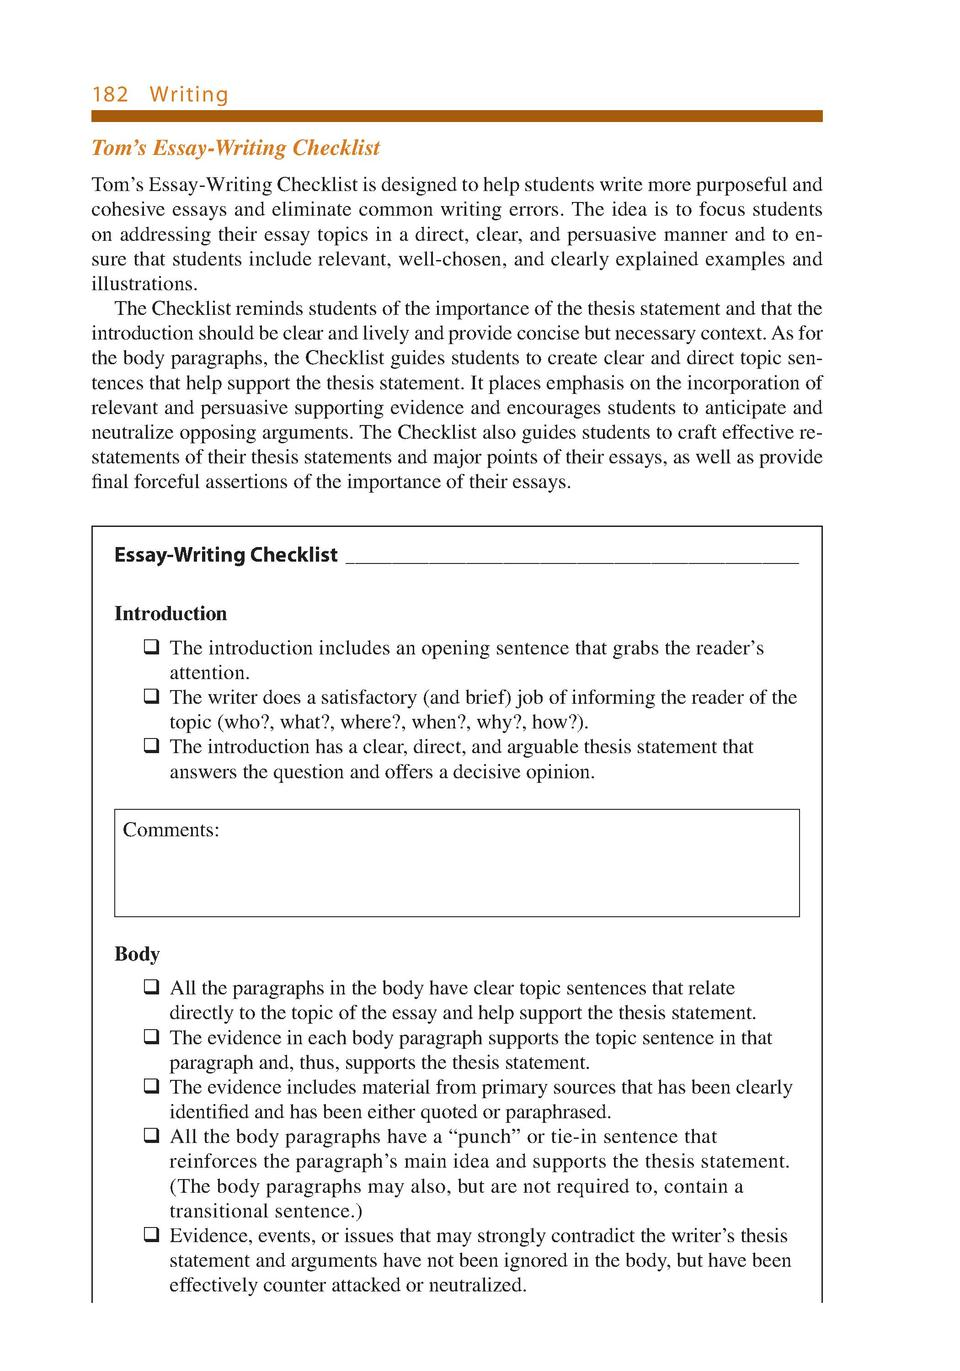 ett writing chapter com 182 writing tom s essay writing checklist tom s essay writing checklist is designed